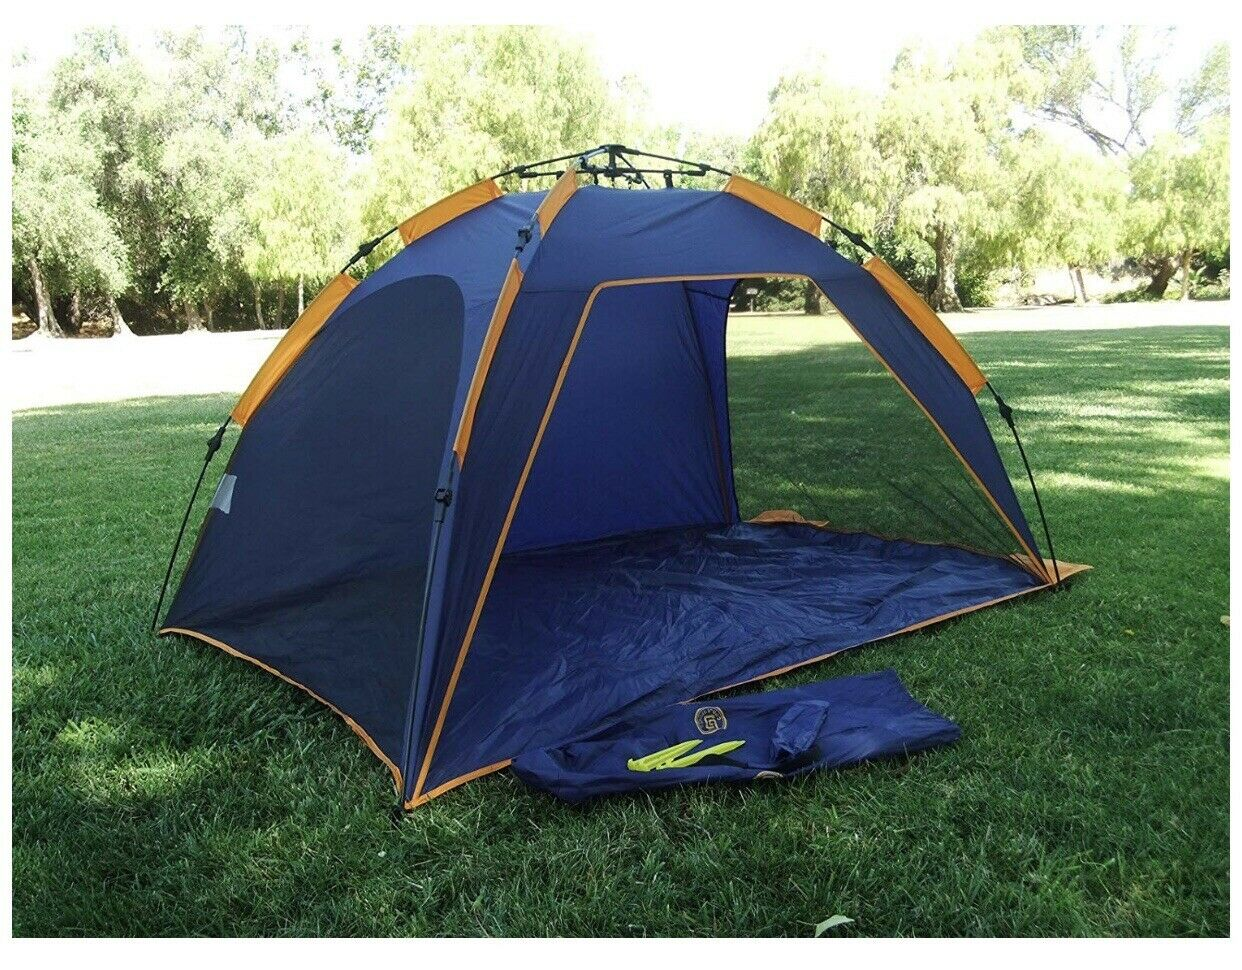 Genji sport Push Pop Up Instant Beach Tent For Vacation & Shade